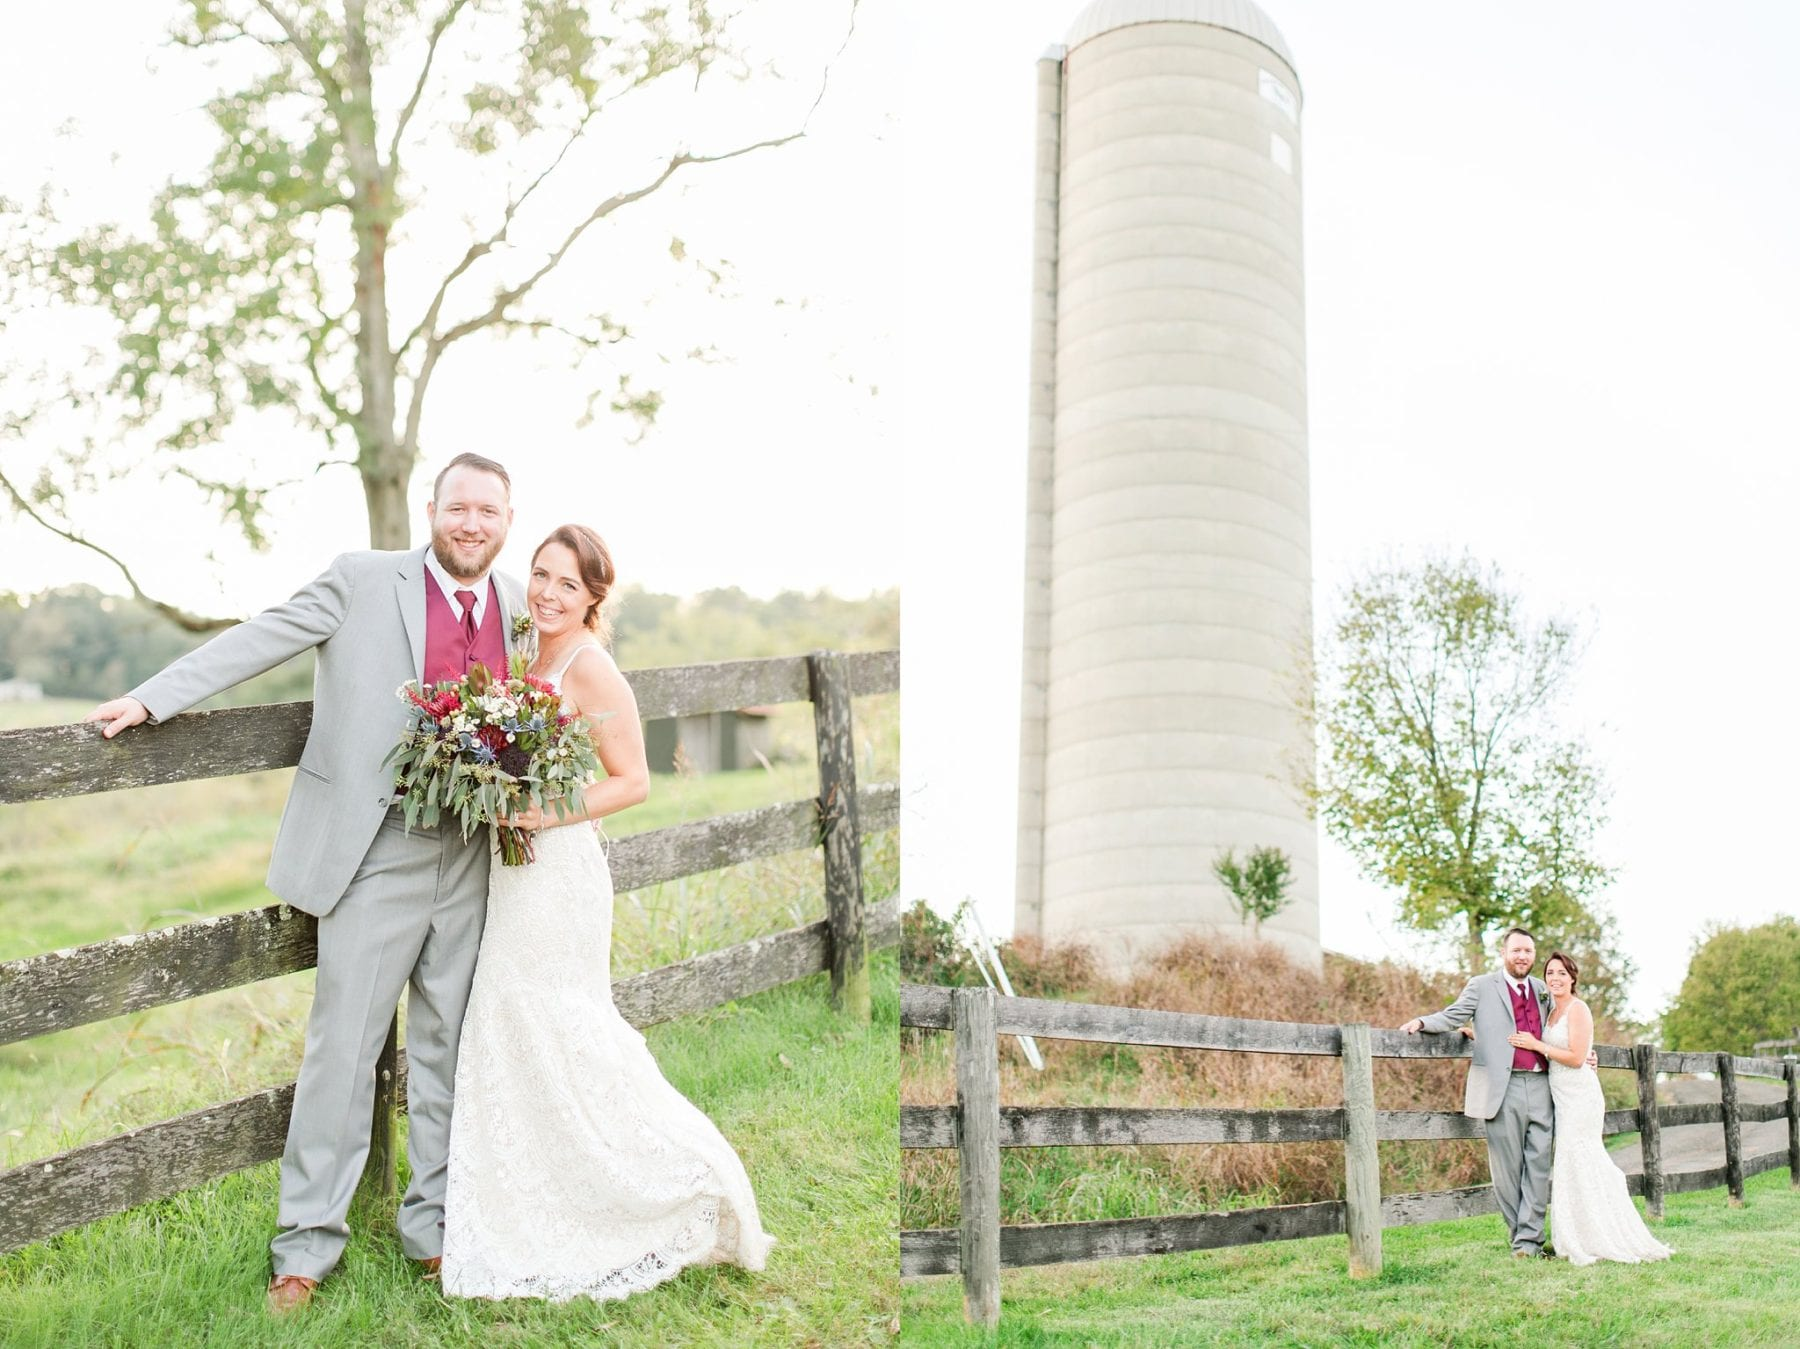 Tranquility Farm Wedding Photos Leesburg Wedding Photographer Megan Kelsey Photography Virginia Wedding Photographer Matt & Colleen-143.jpg